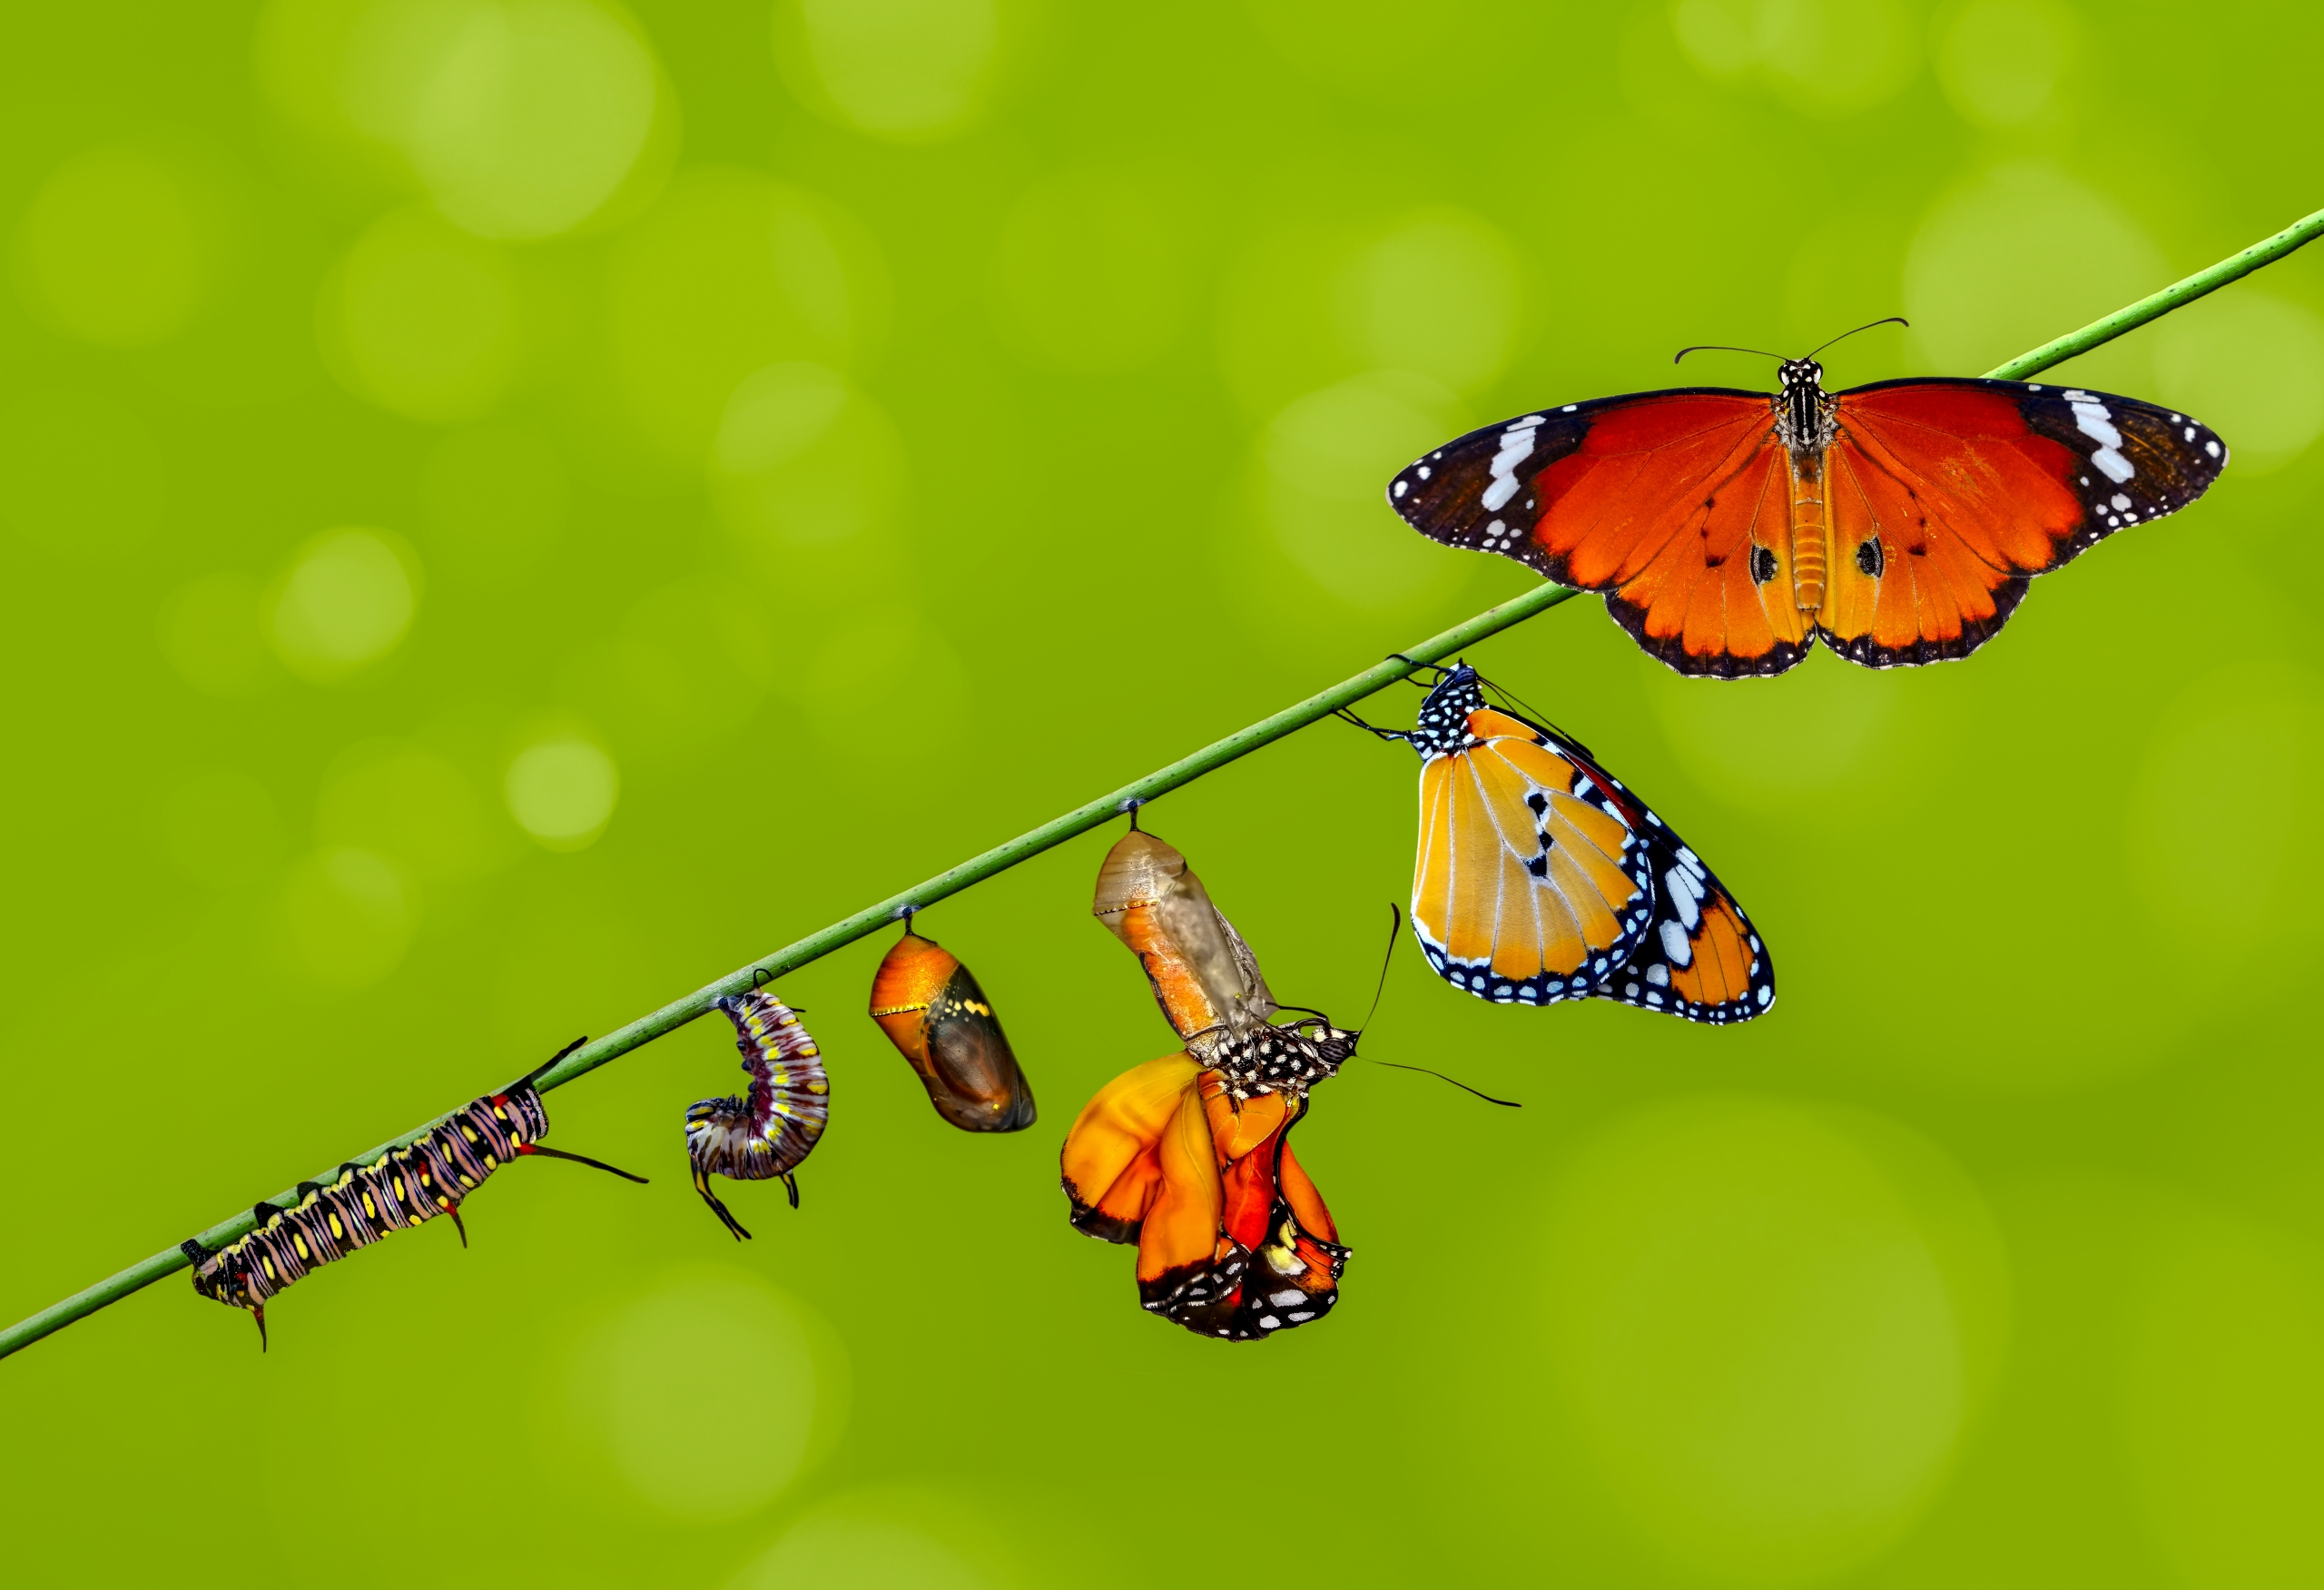 The birth of butterflies 2021